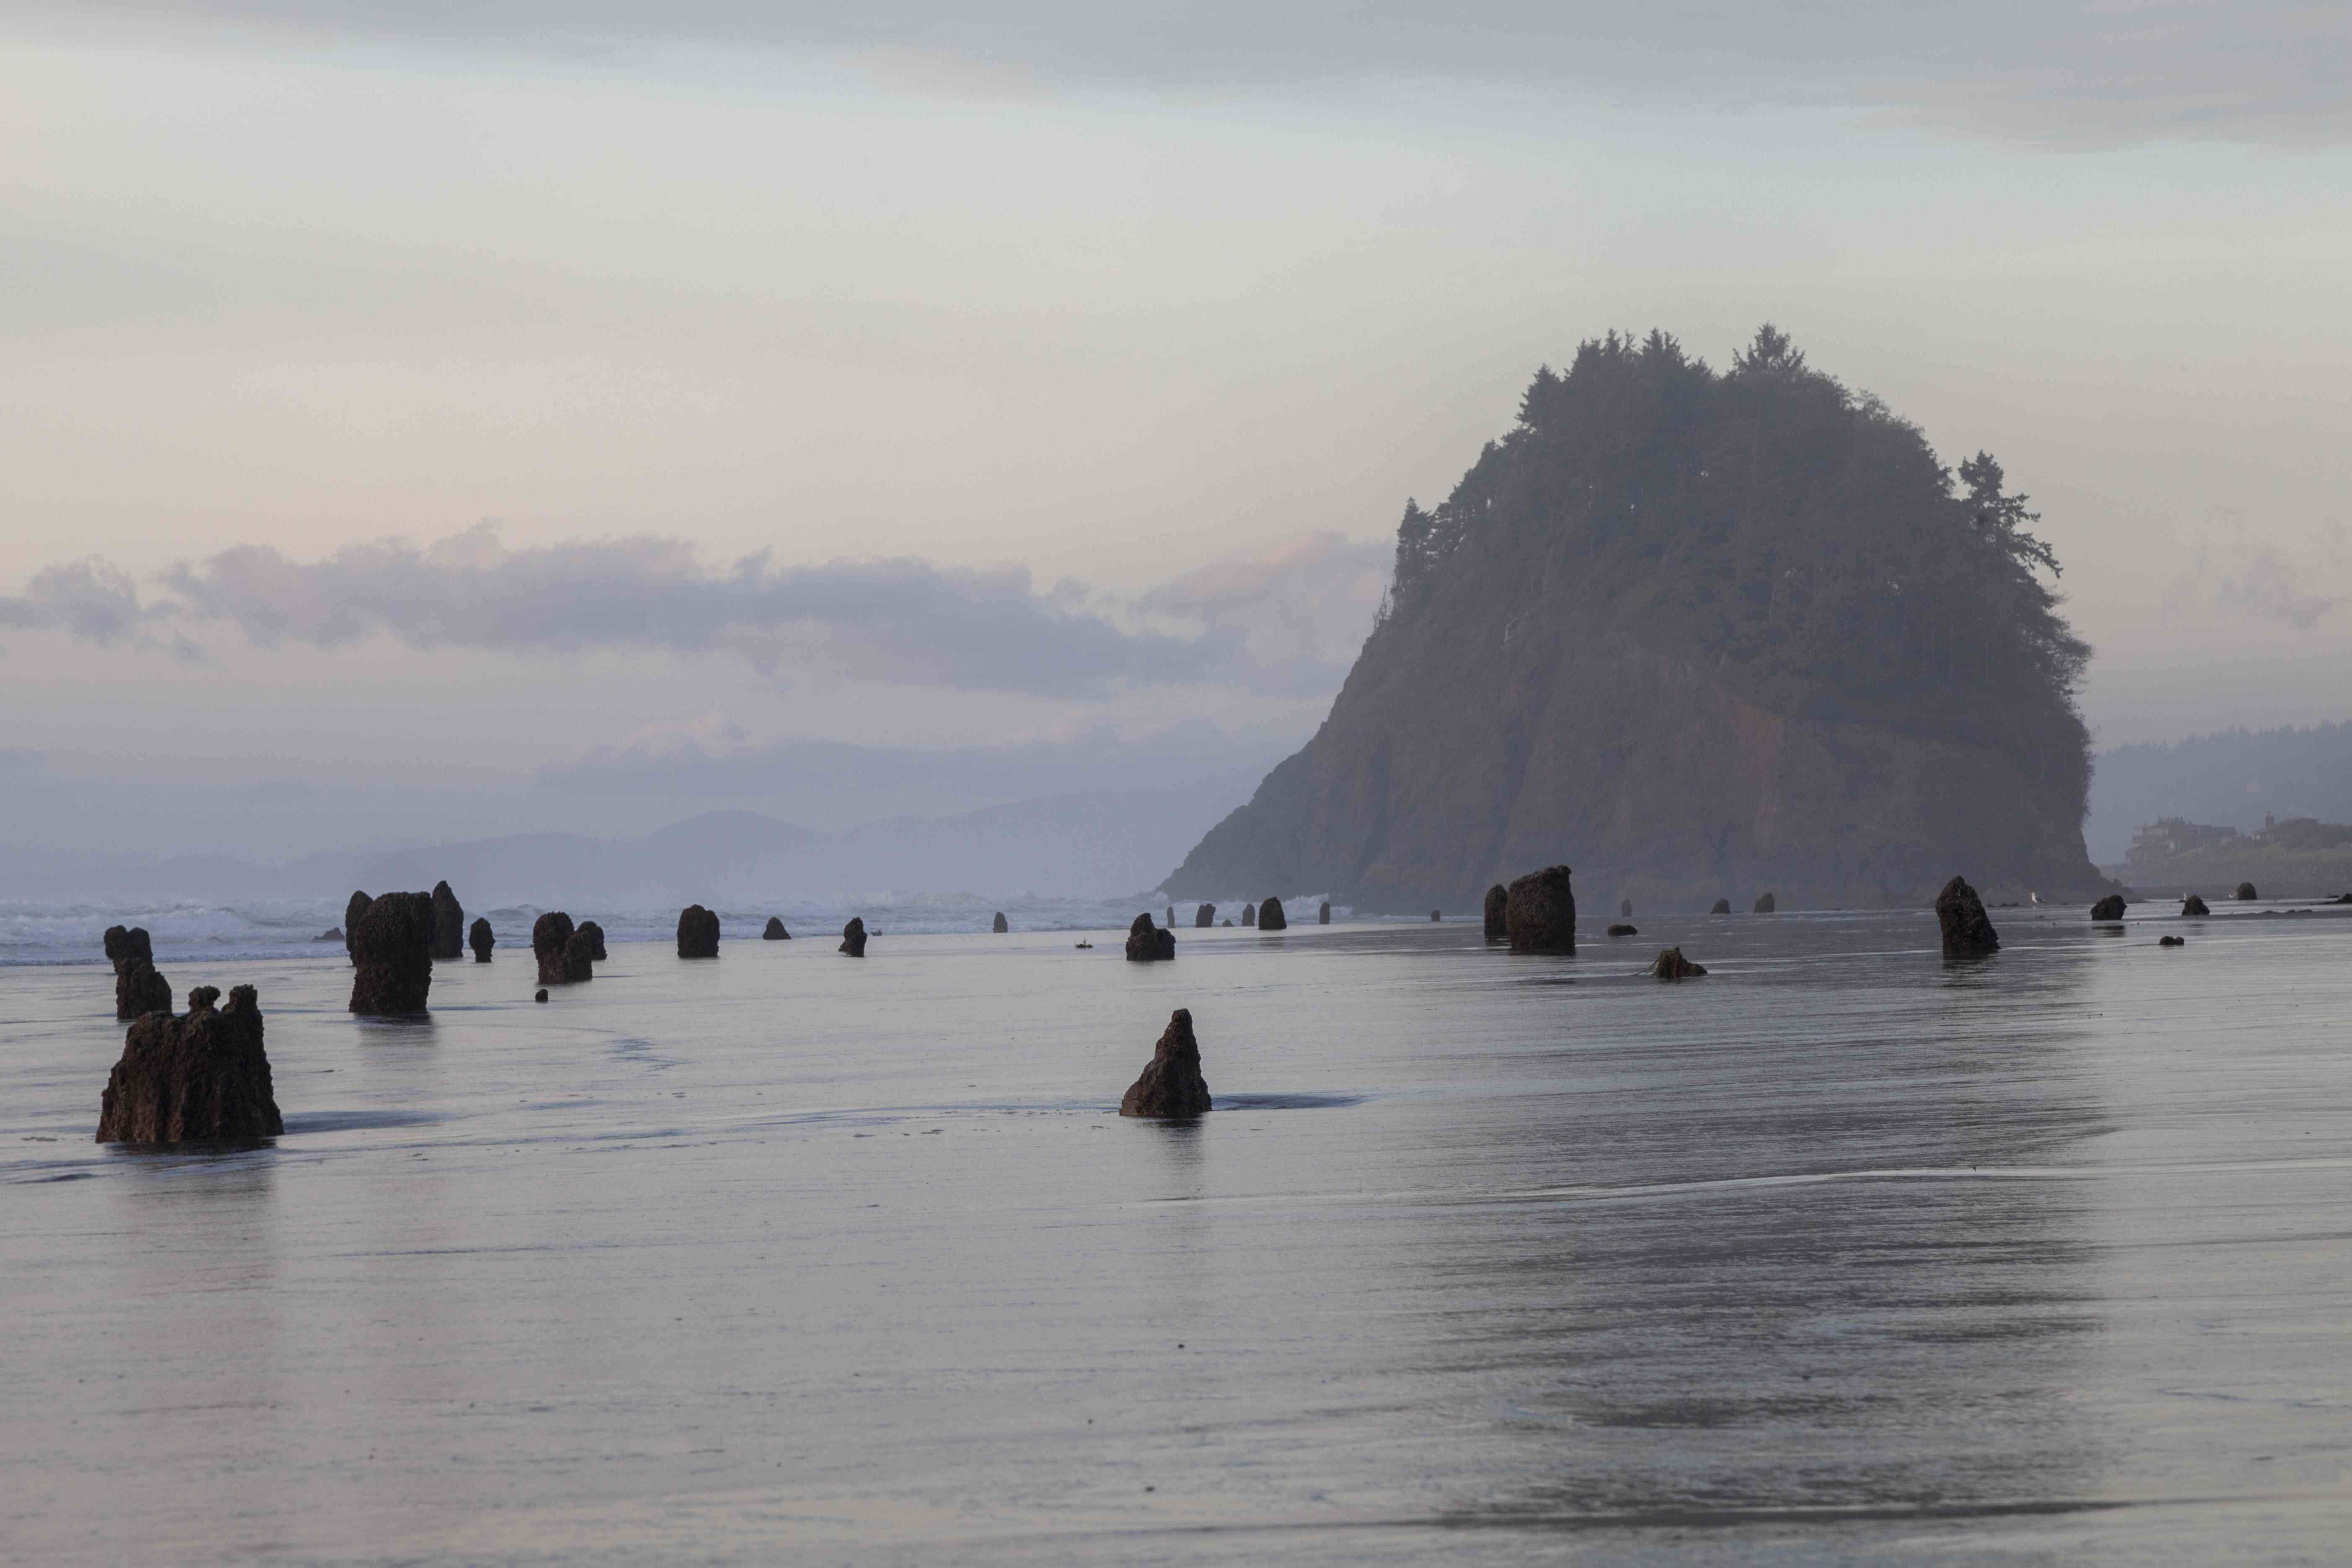 Ocean on the Oregon coast dotted with barren stumps